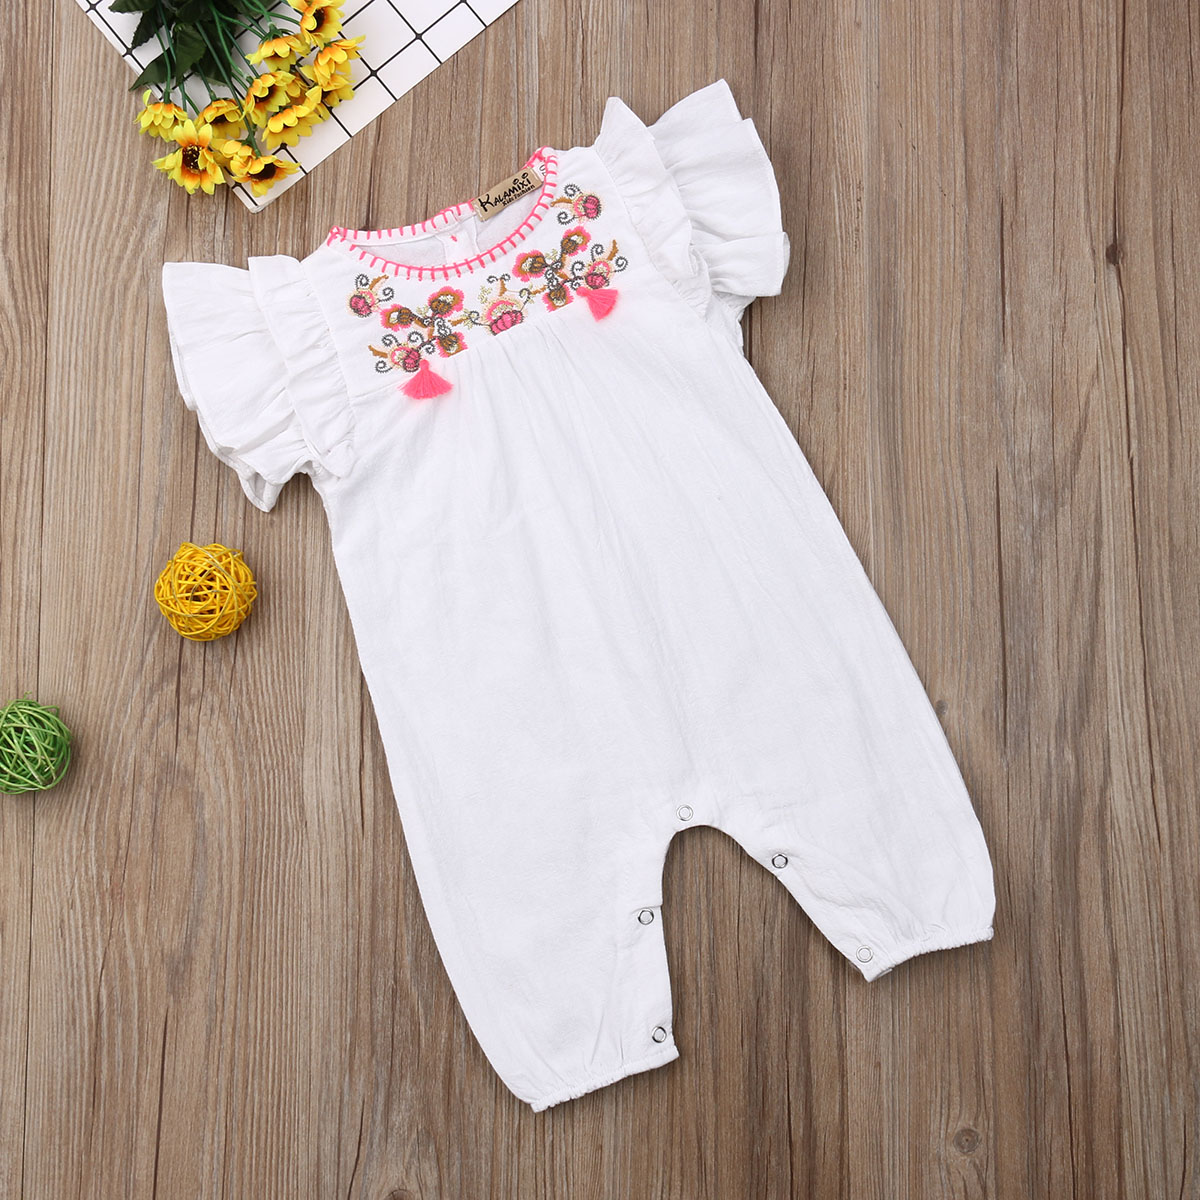 2019 Summer Flower Baby Girls Clothes Newborn Infant Baby Ruffles   Rompers   Jumpsuit Playsuit Baby Girls Costumes